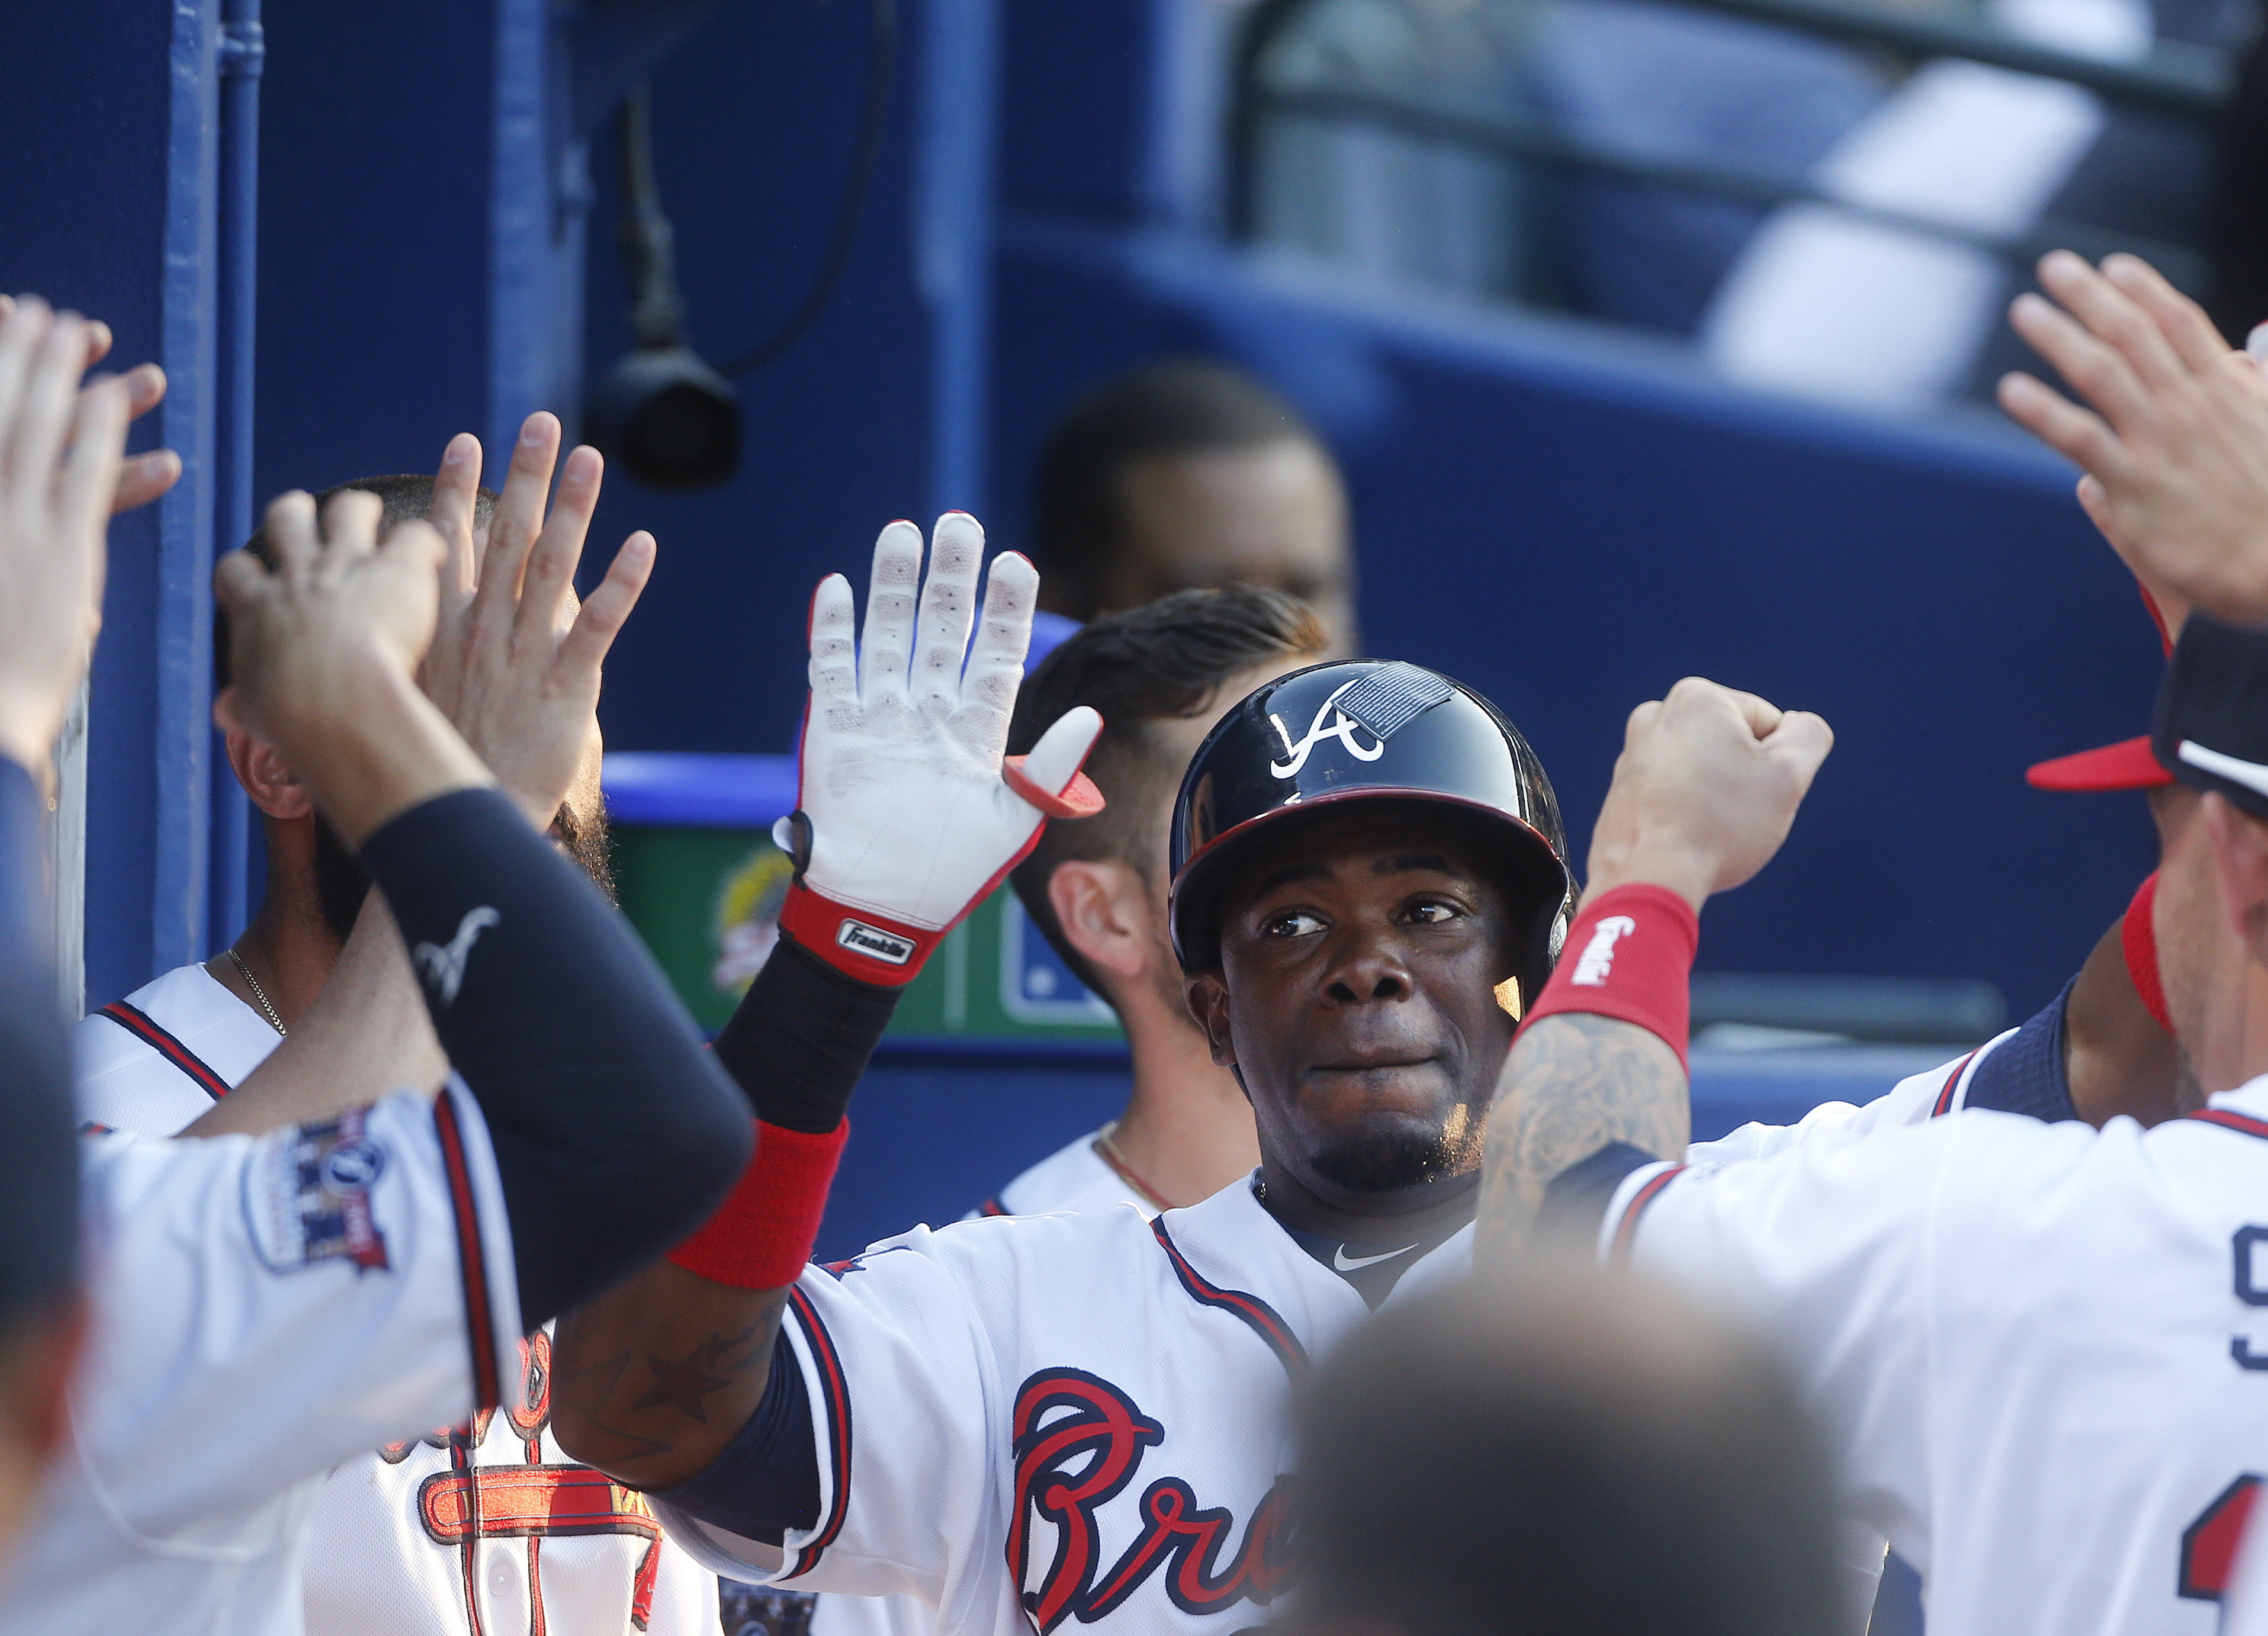 Atlanta Braves' Adonis Garcia celebrates with his teammates in the dugout after hitting a home run during the second inning of a baseball game against the Chicago Cubs on Friday, June 10, 2016, in Atlanta. (AP Photo/John Bazemore)